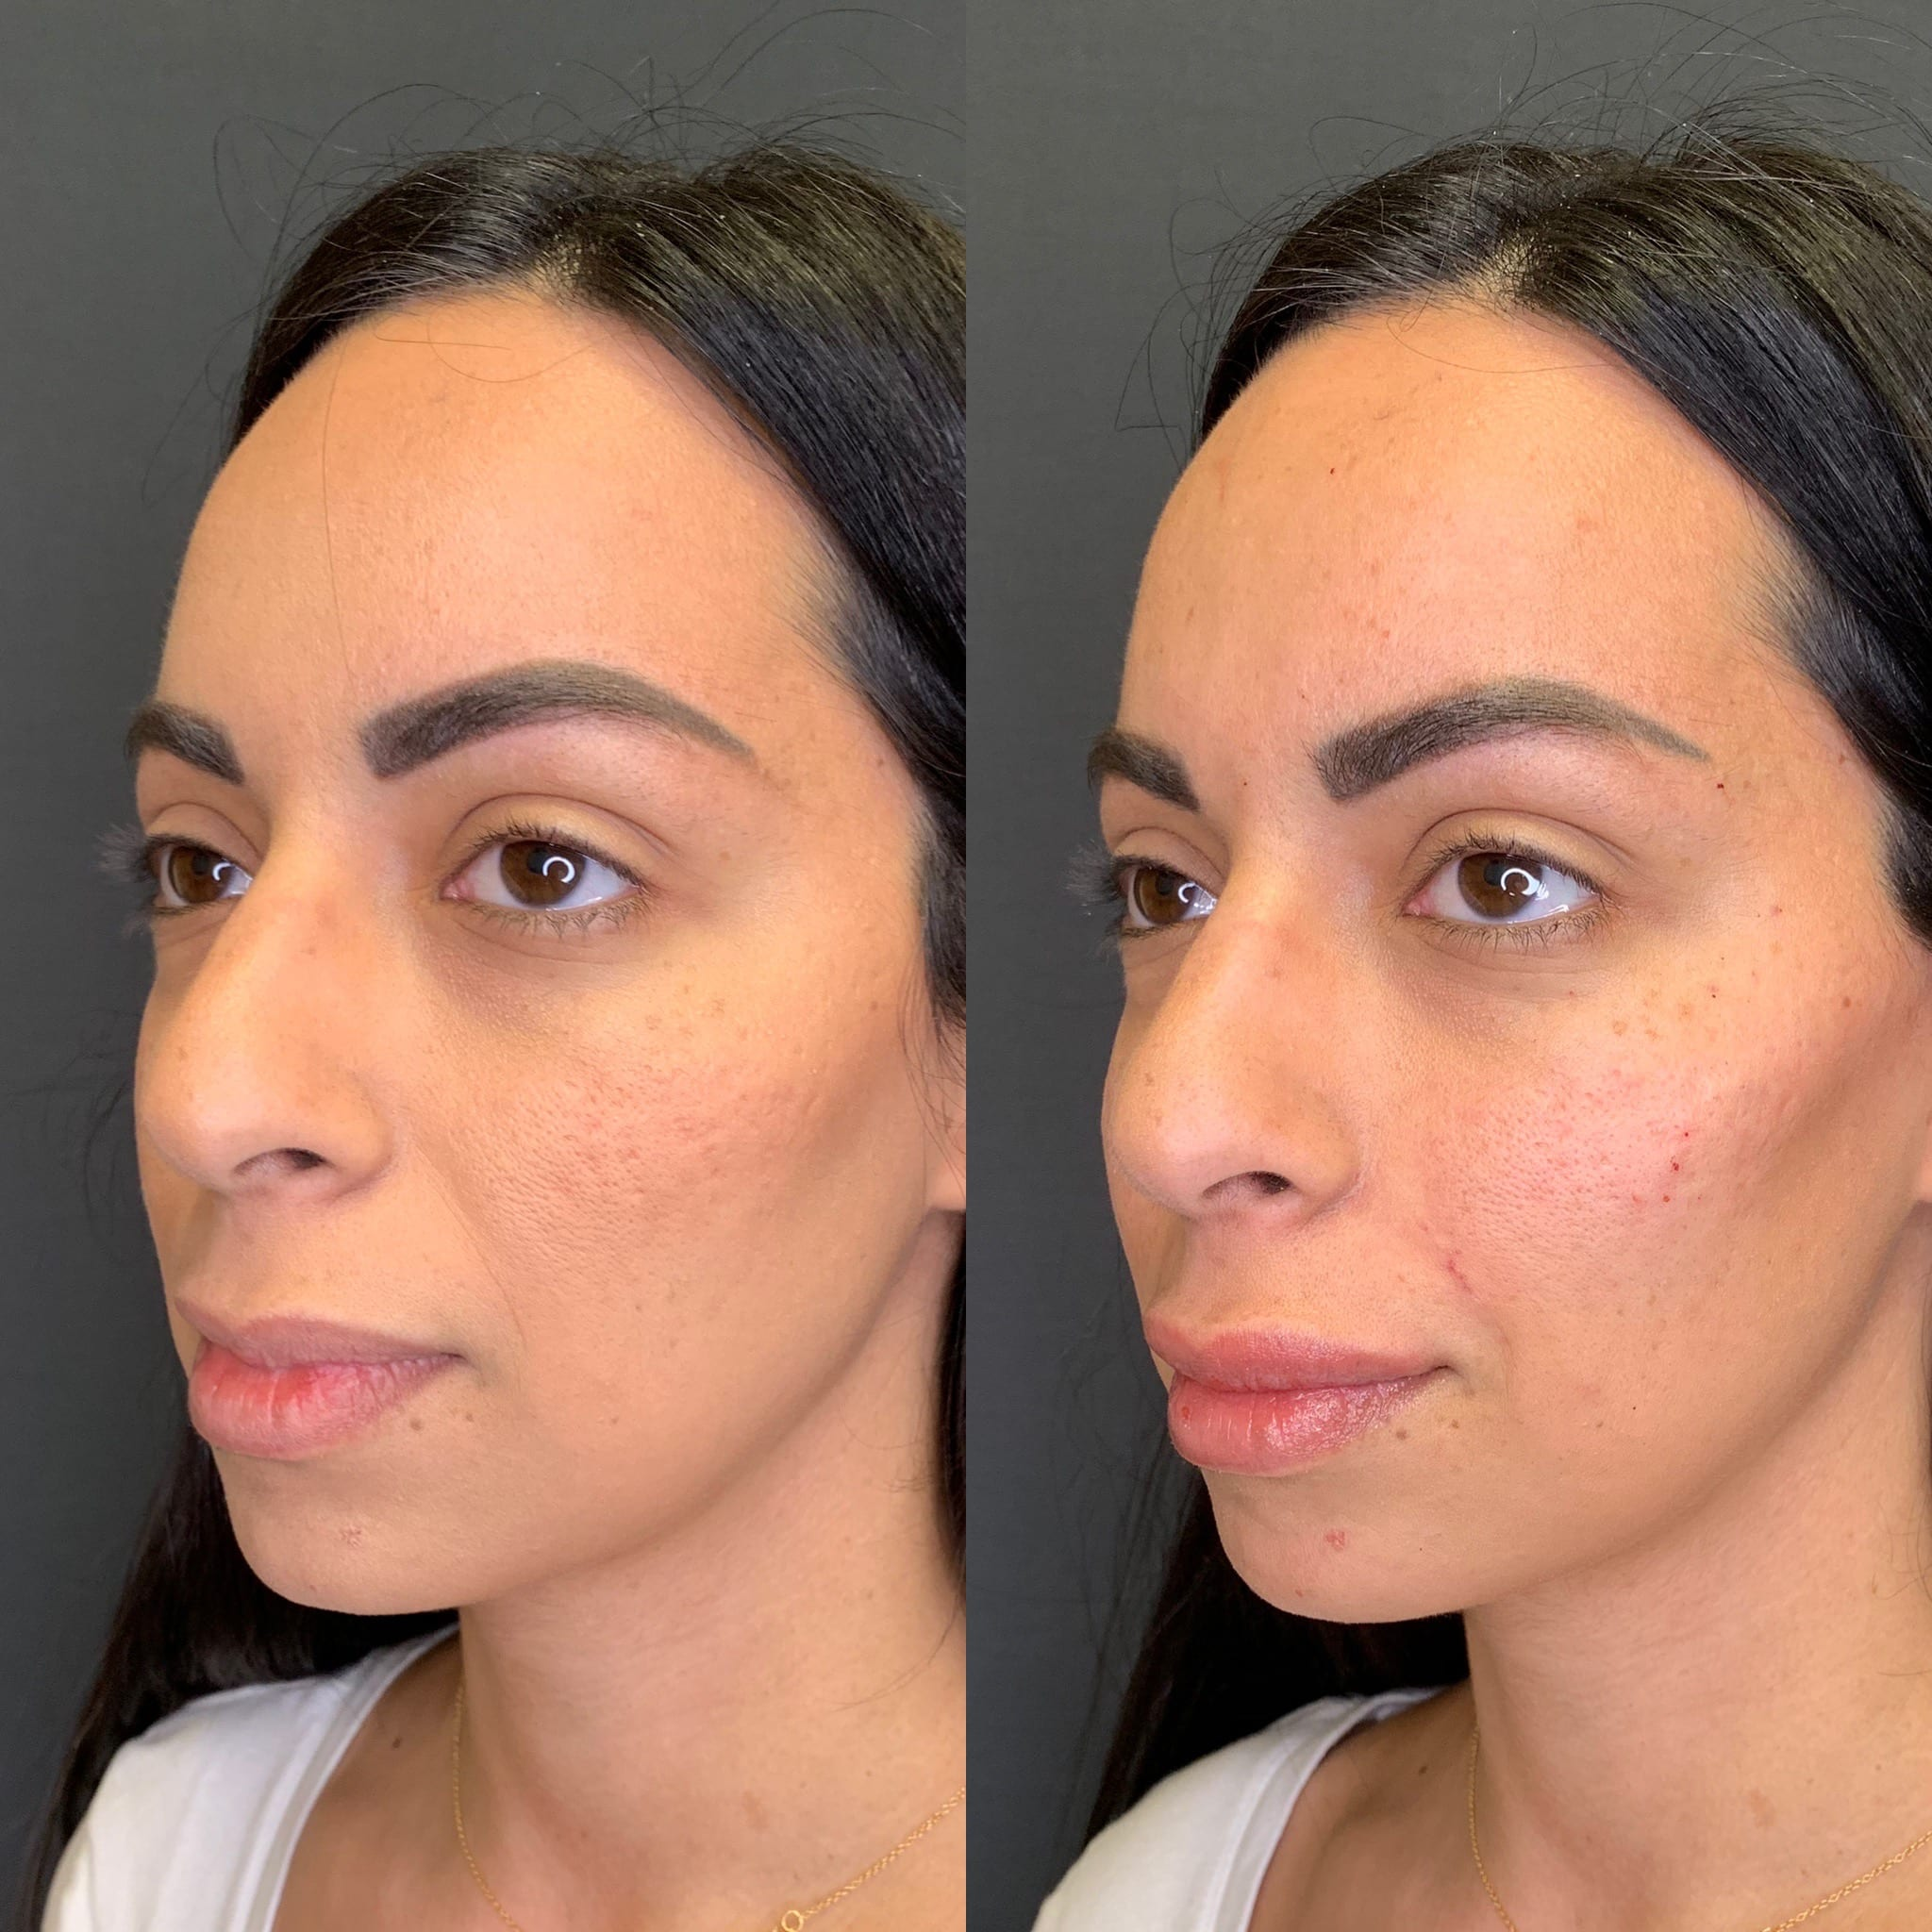 32 y/o Middle Eastern F immediately after injecting 2 syringes of voluma to her cheek bones for mid-face lift, contour and definition.